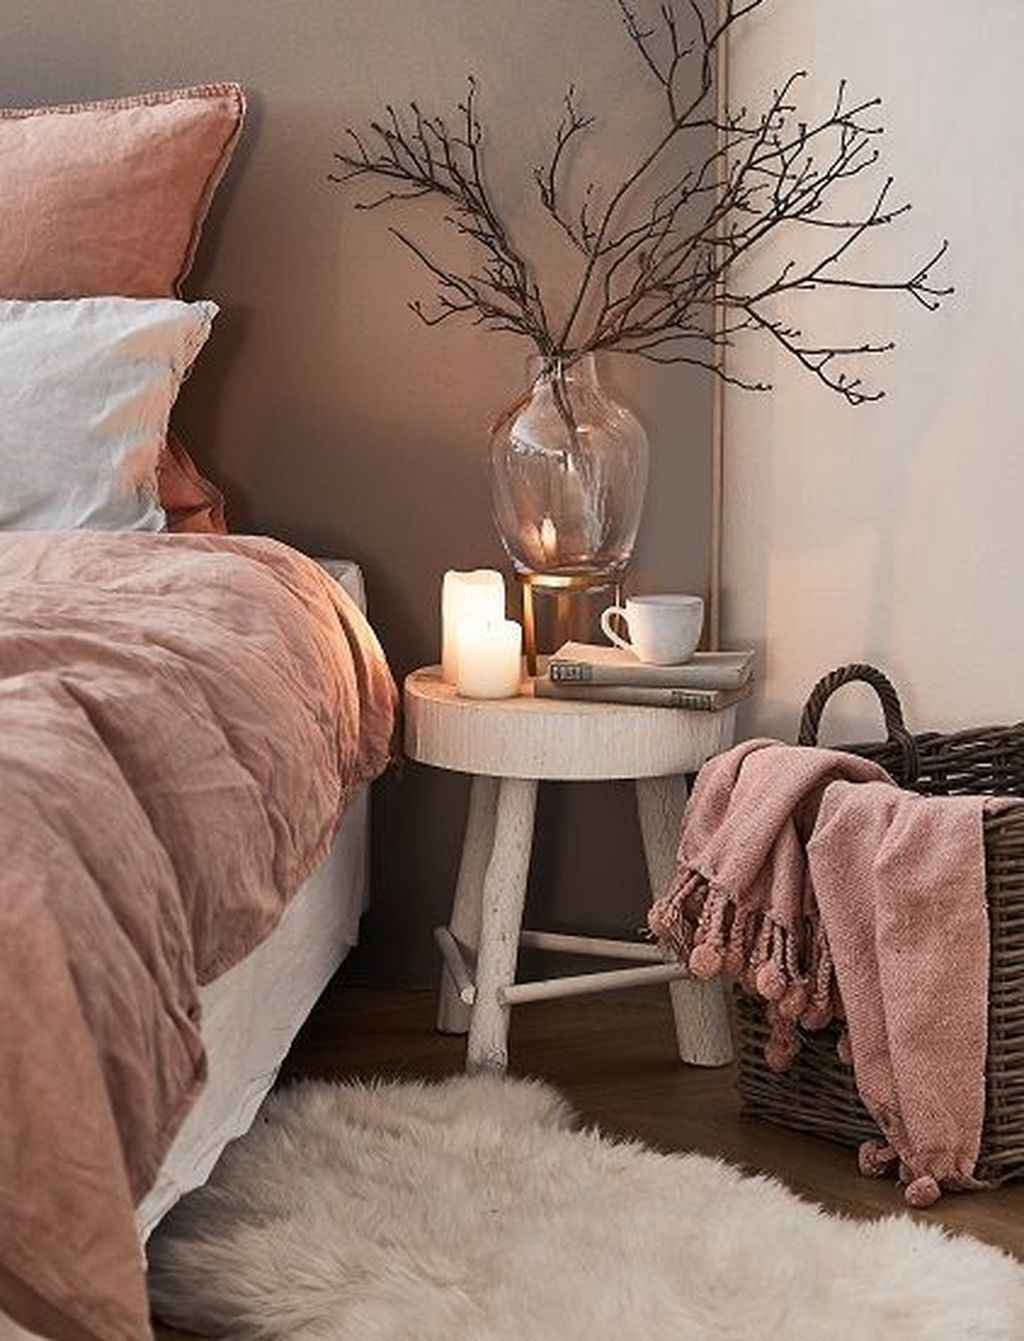 25 Scandinavian Bedroom Ideas To Give Airy And Stylish Look - 15Q